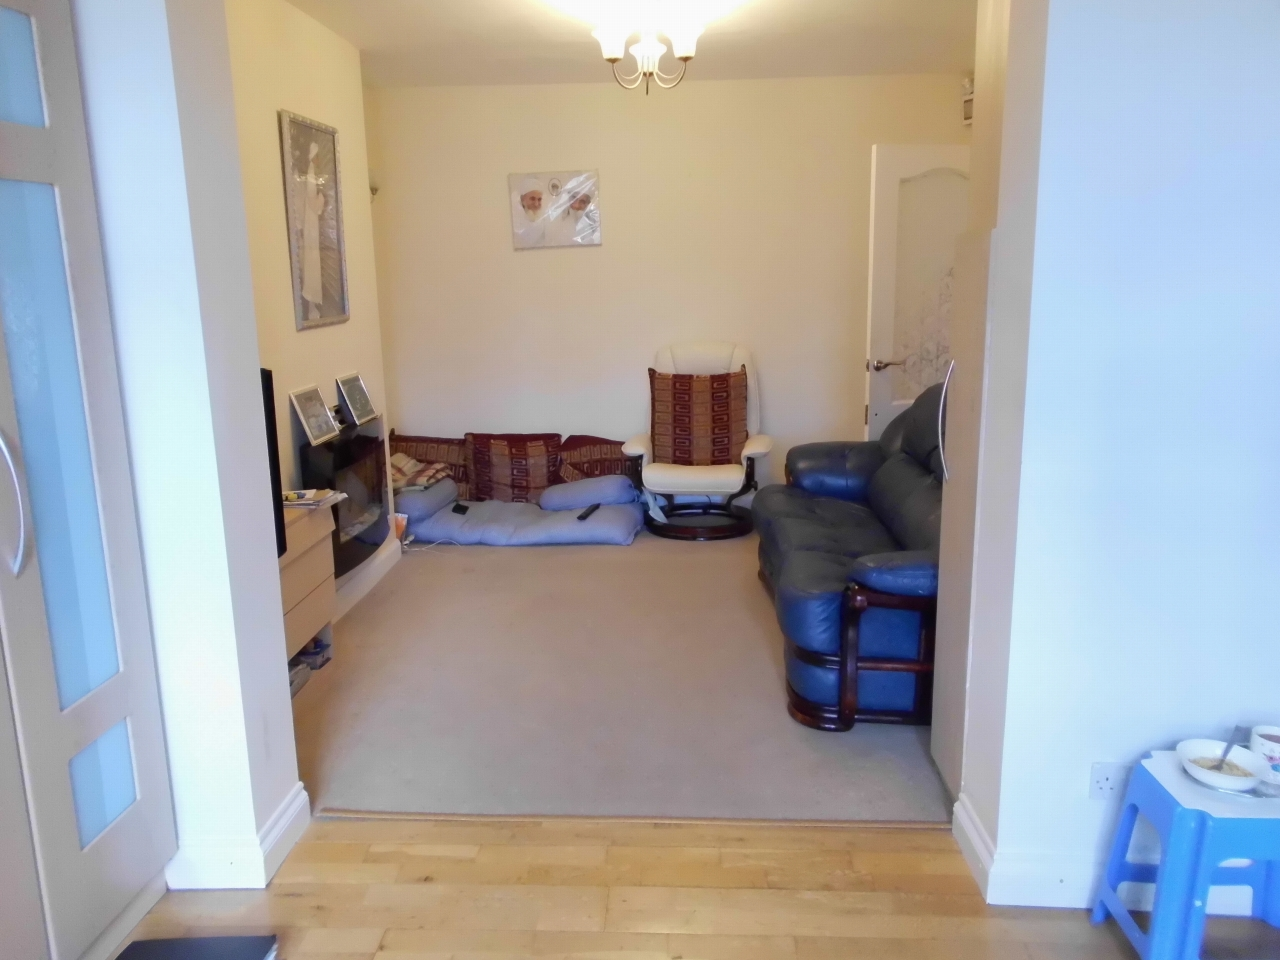 3 bedroom semi-detached house SSTC in Leicester - Photograph 3.